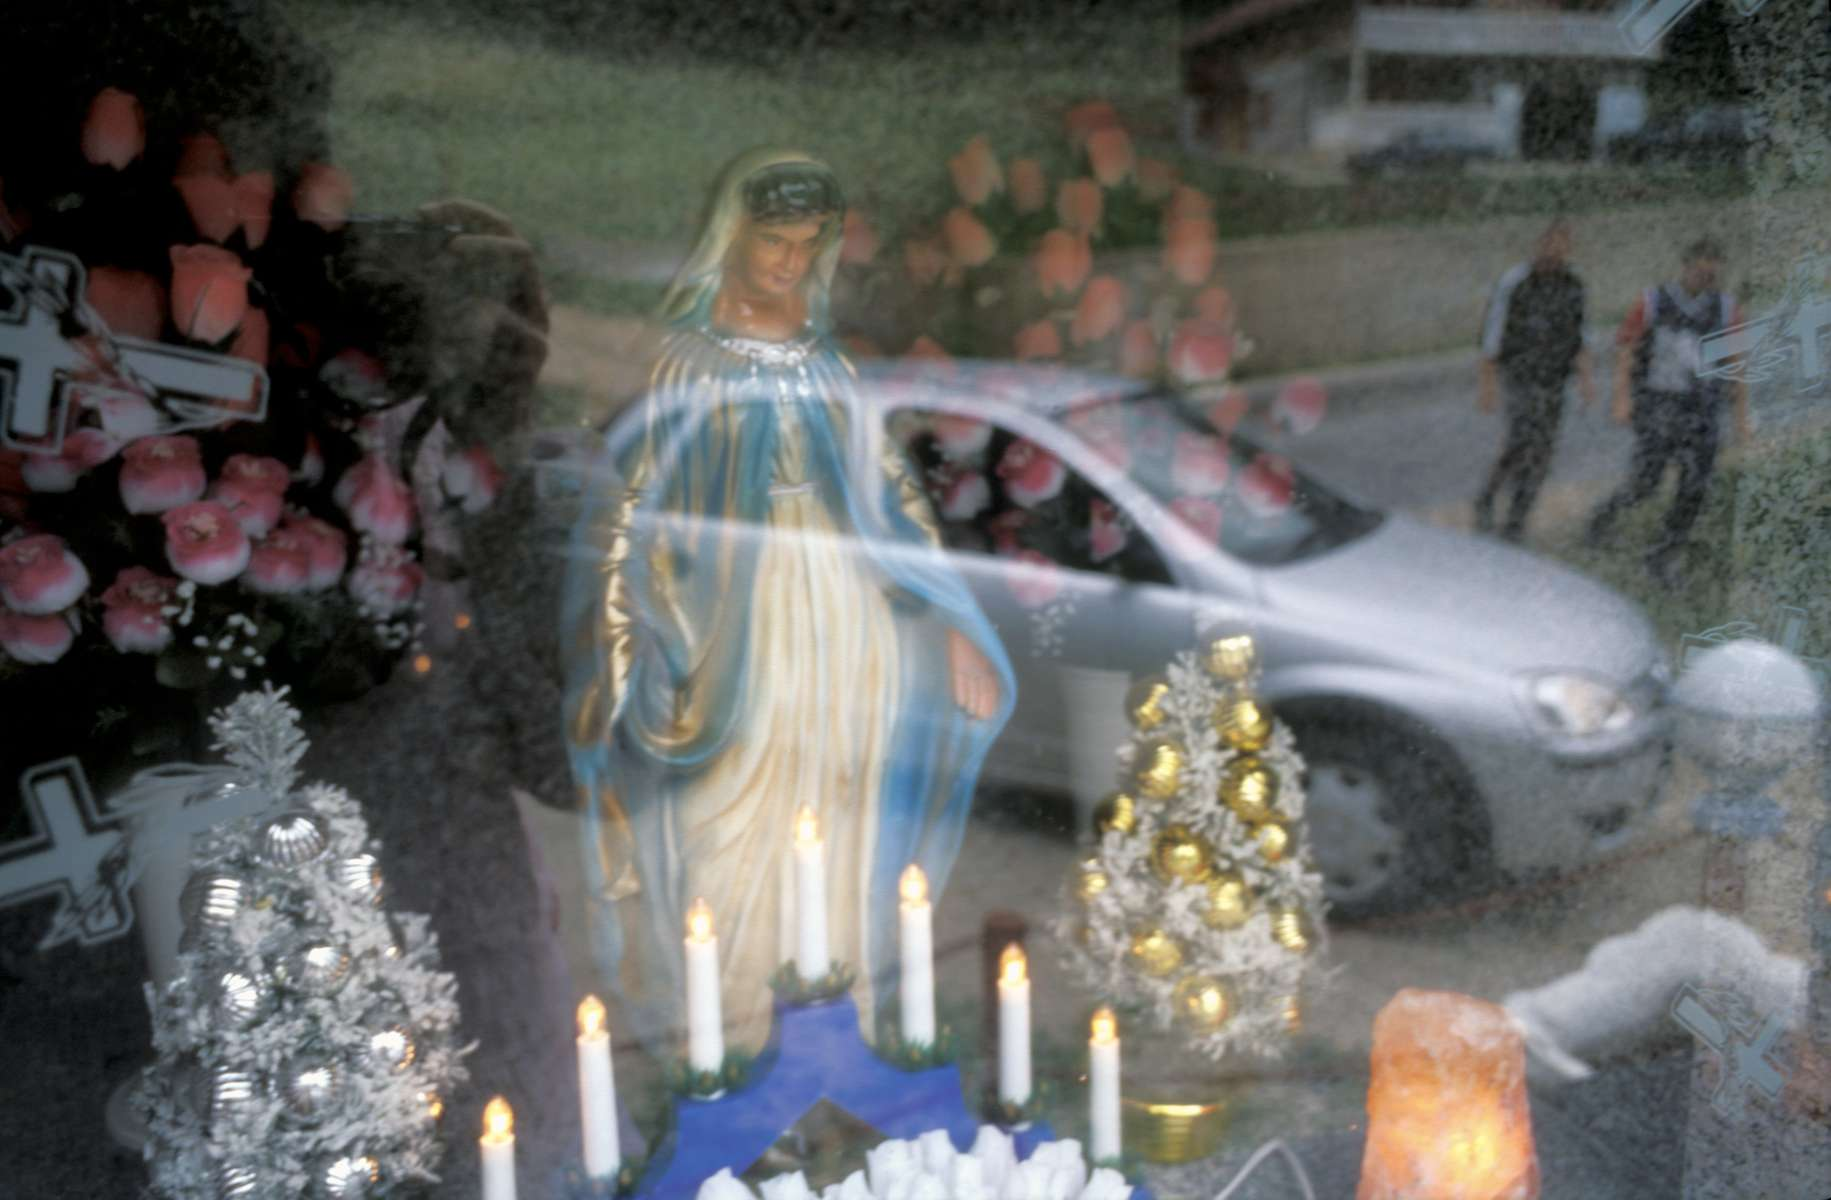 A Catholic roadside shrine near the town of Travnik.